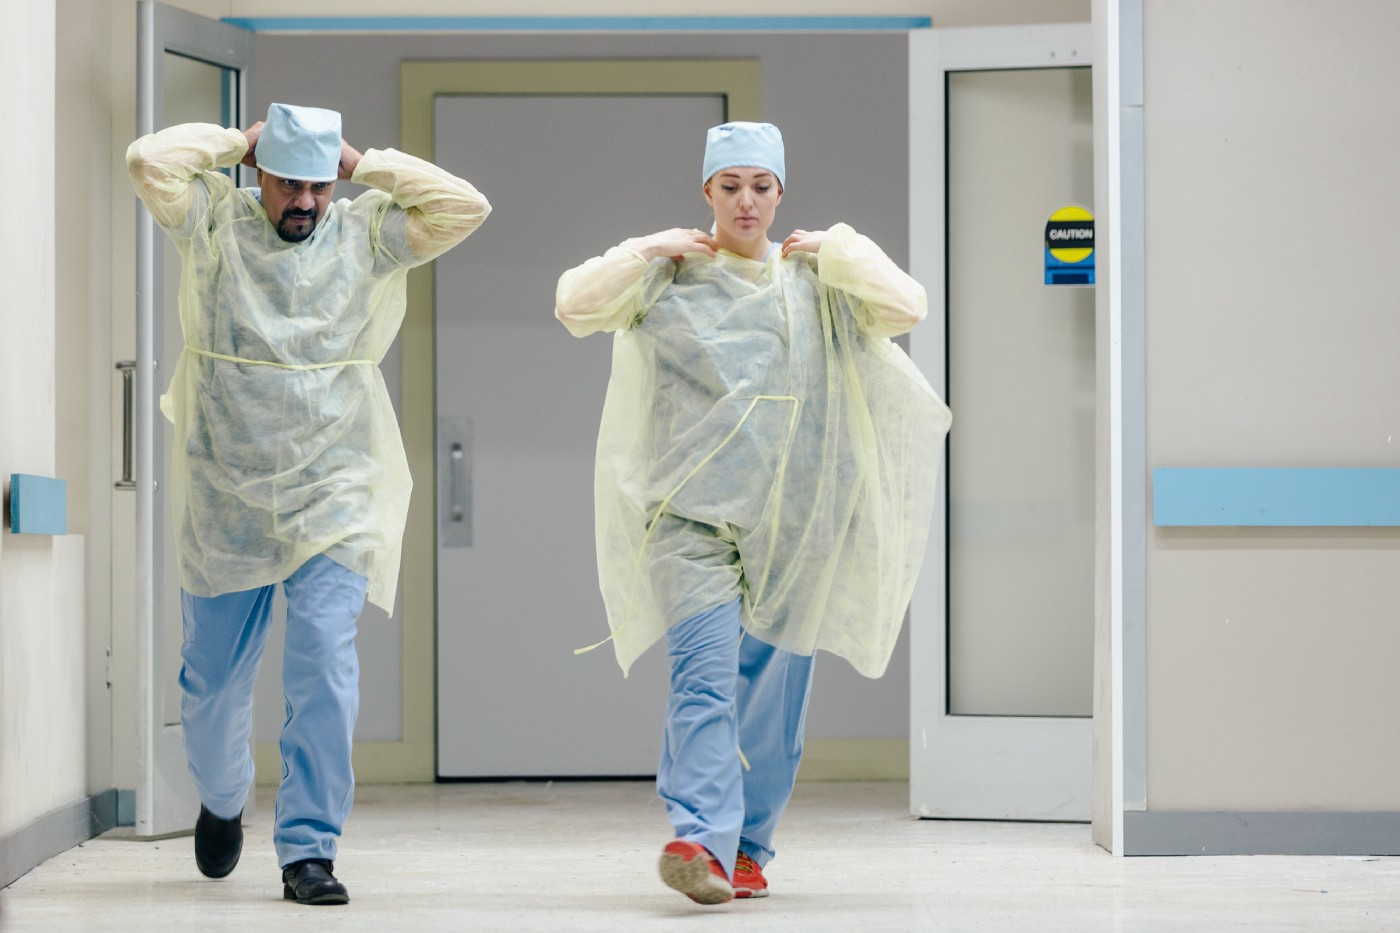 Two doctors put on PPE to care for patient